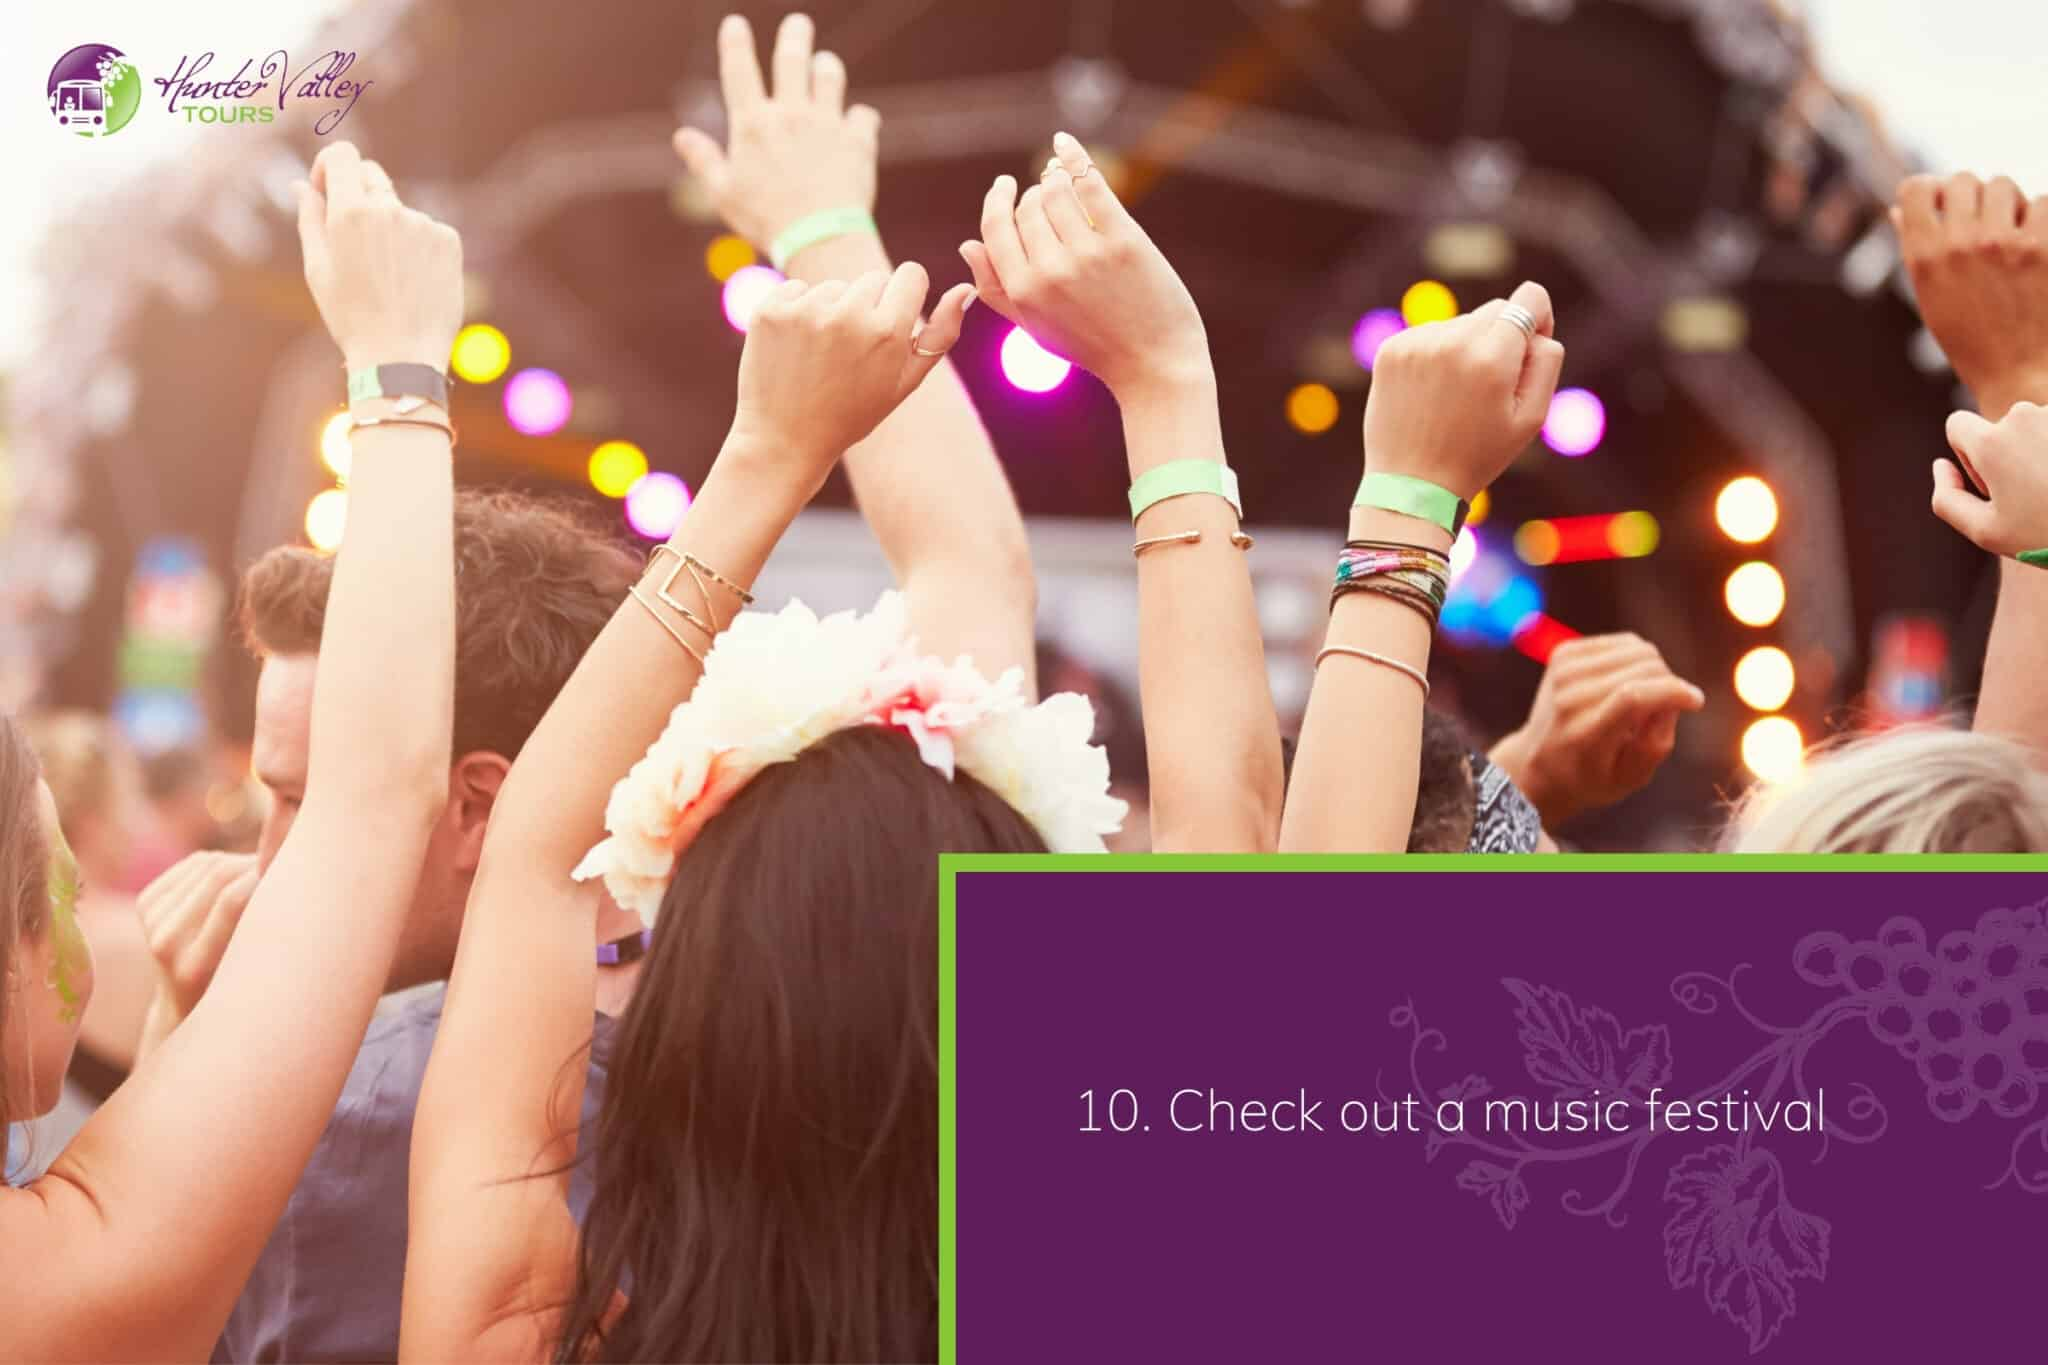 Check out a music festival